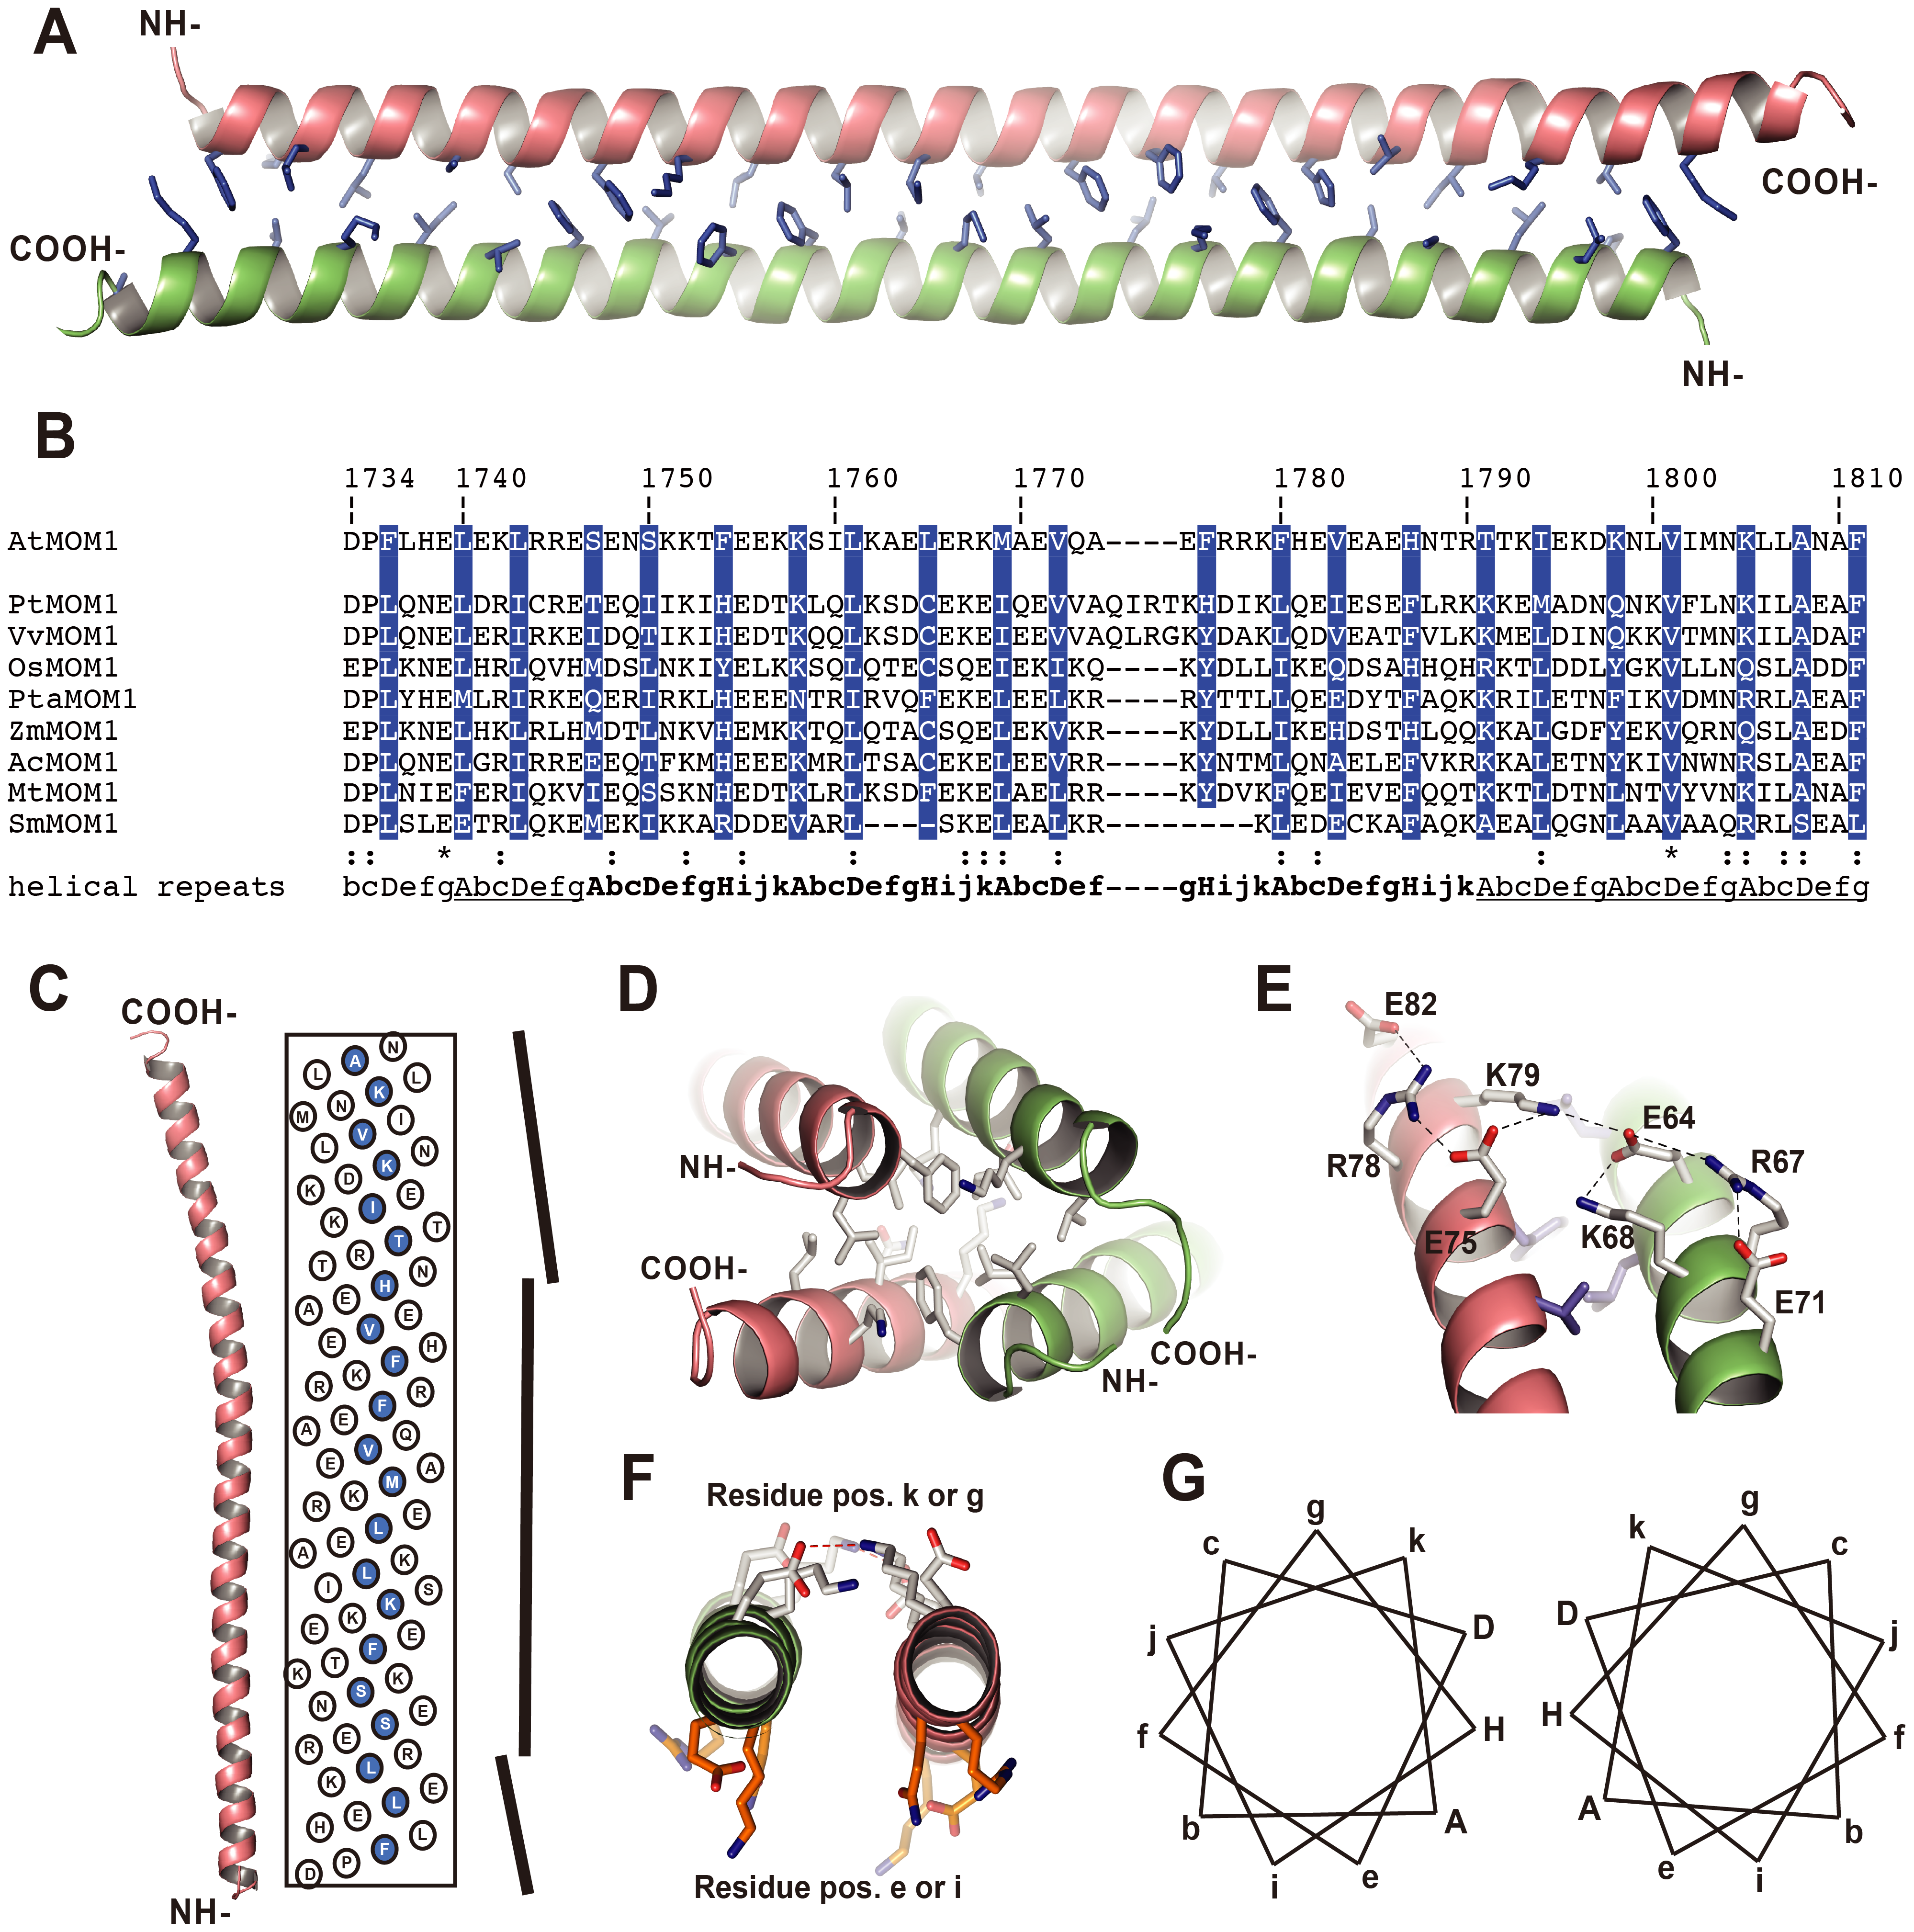 Crystal structure of the CMM2 protein fragment.